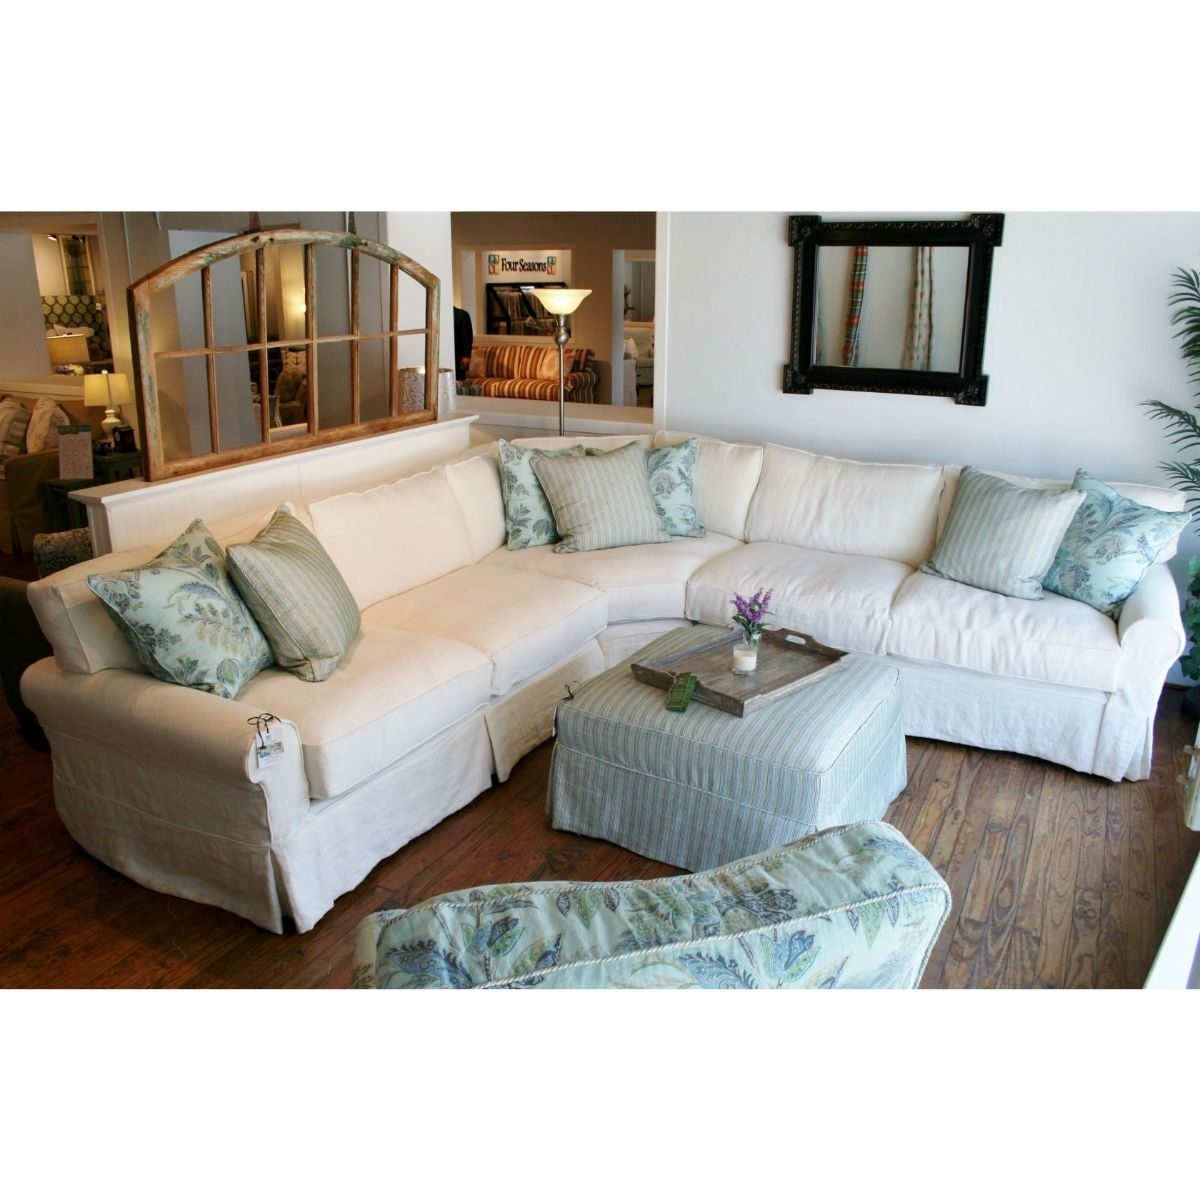 Slipcovered Sectional Sofa Boothbay (Daniel) 108X108 | Coastal With Regard To Tampa Sectional Sofas (Image 8 of 10)